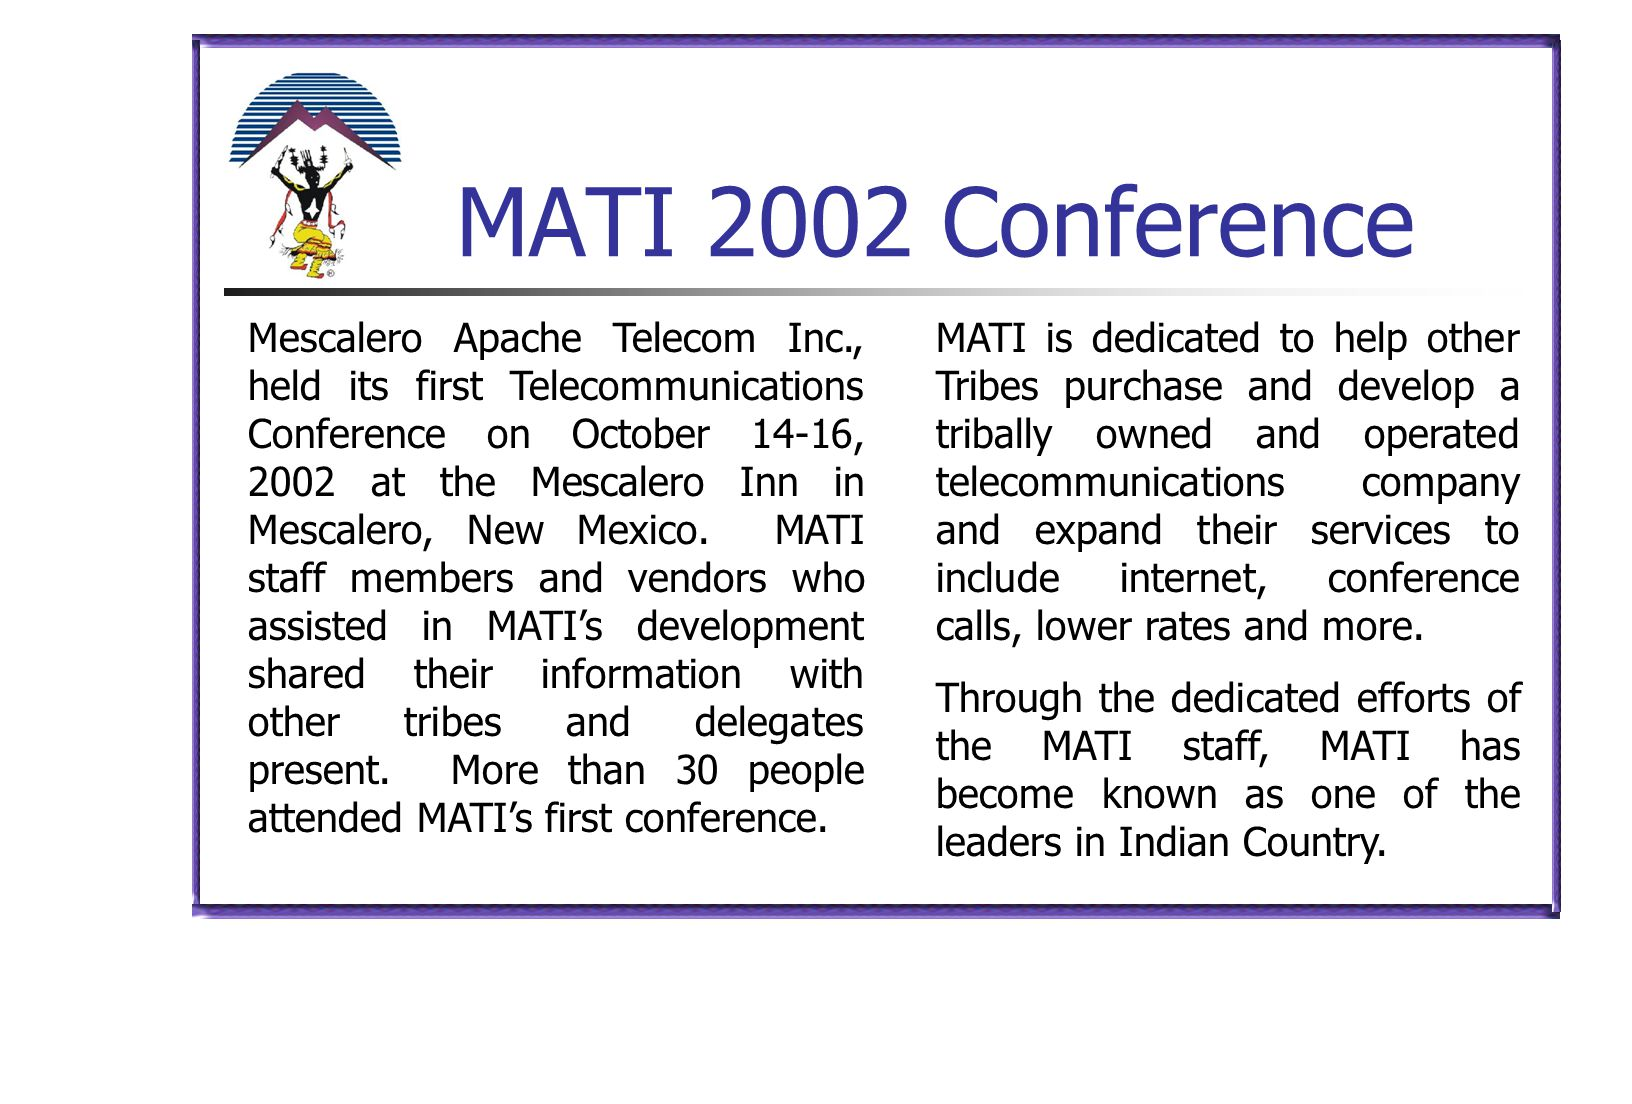 MATI 2002 Conference MATI is dedicated to help other Tribes purchase and develop a tribally owned and operated telecommunications company and expand t